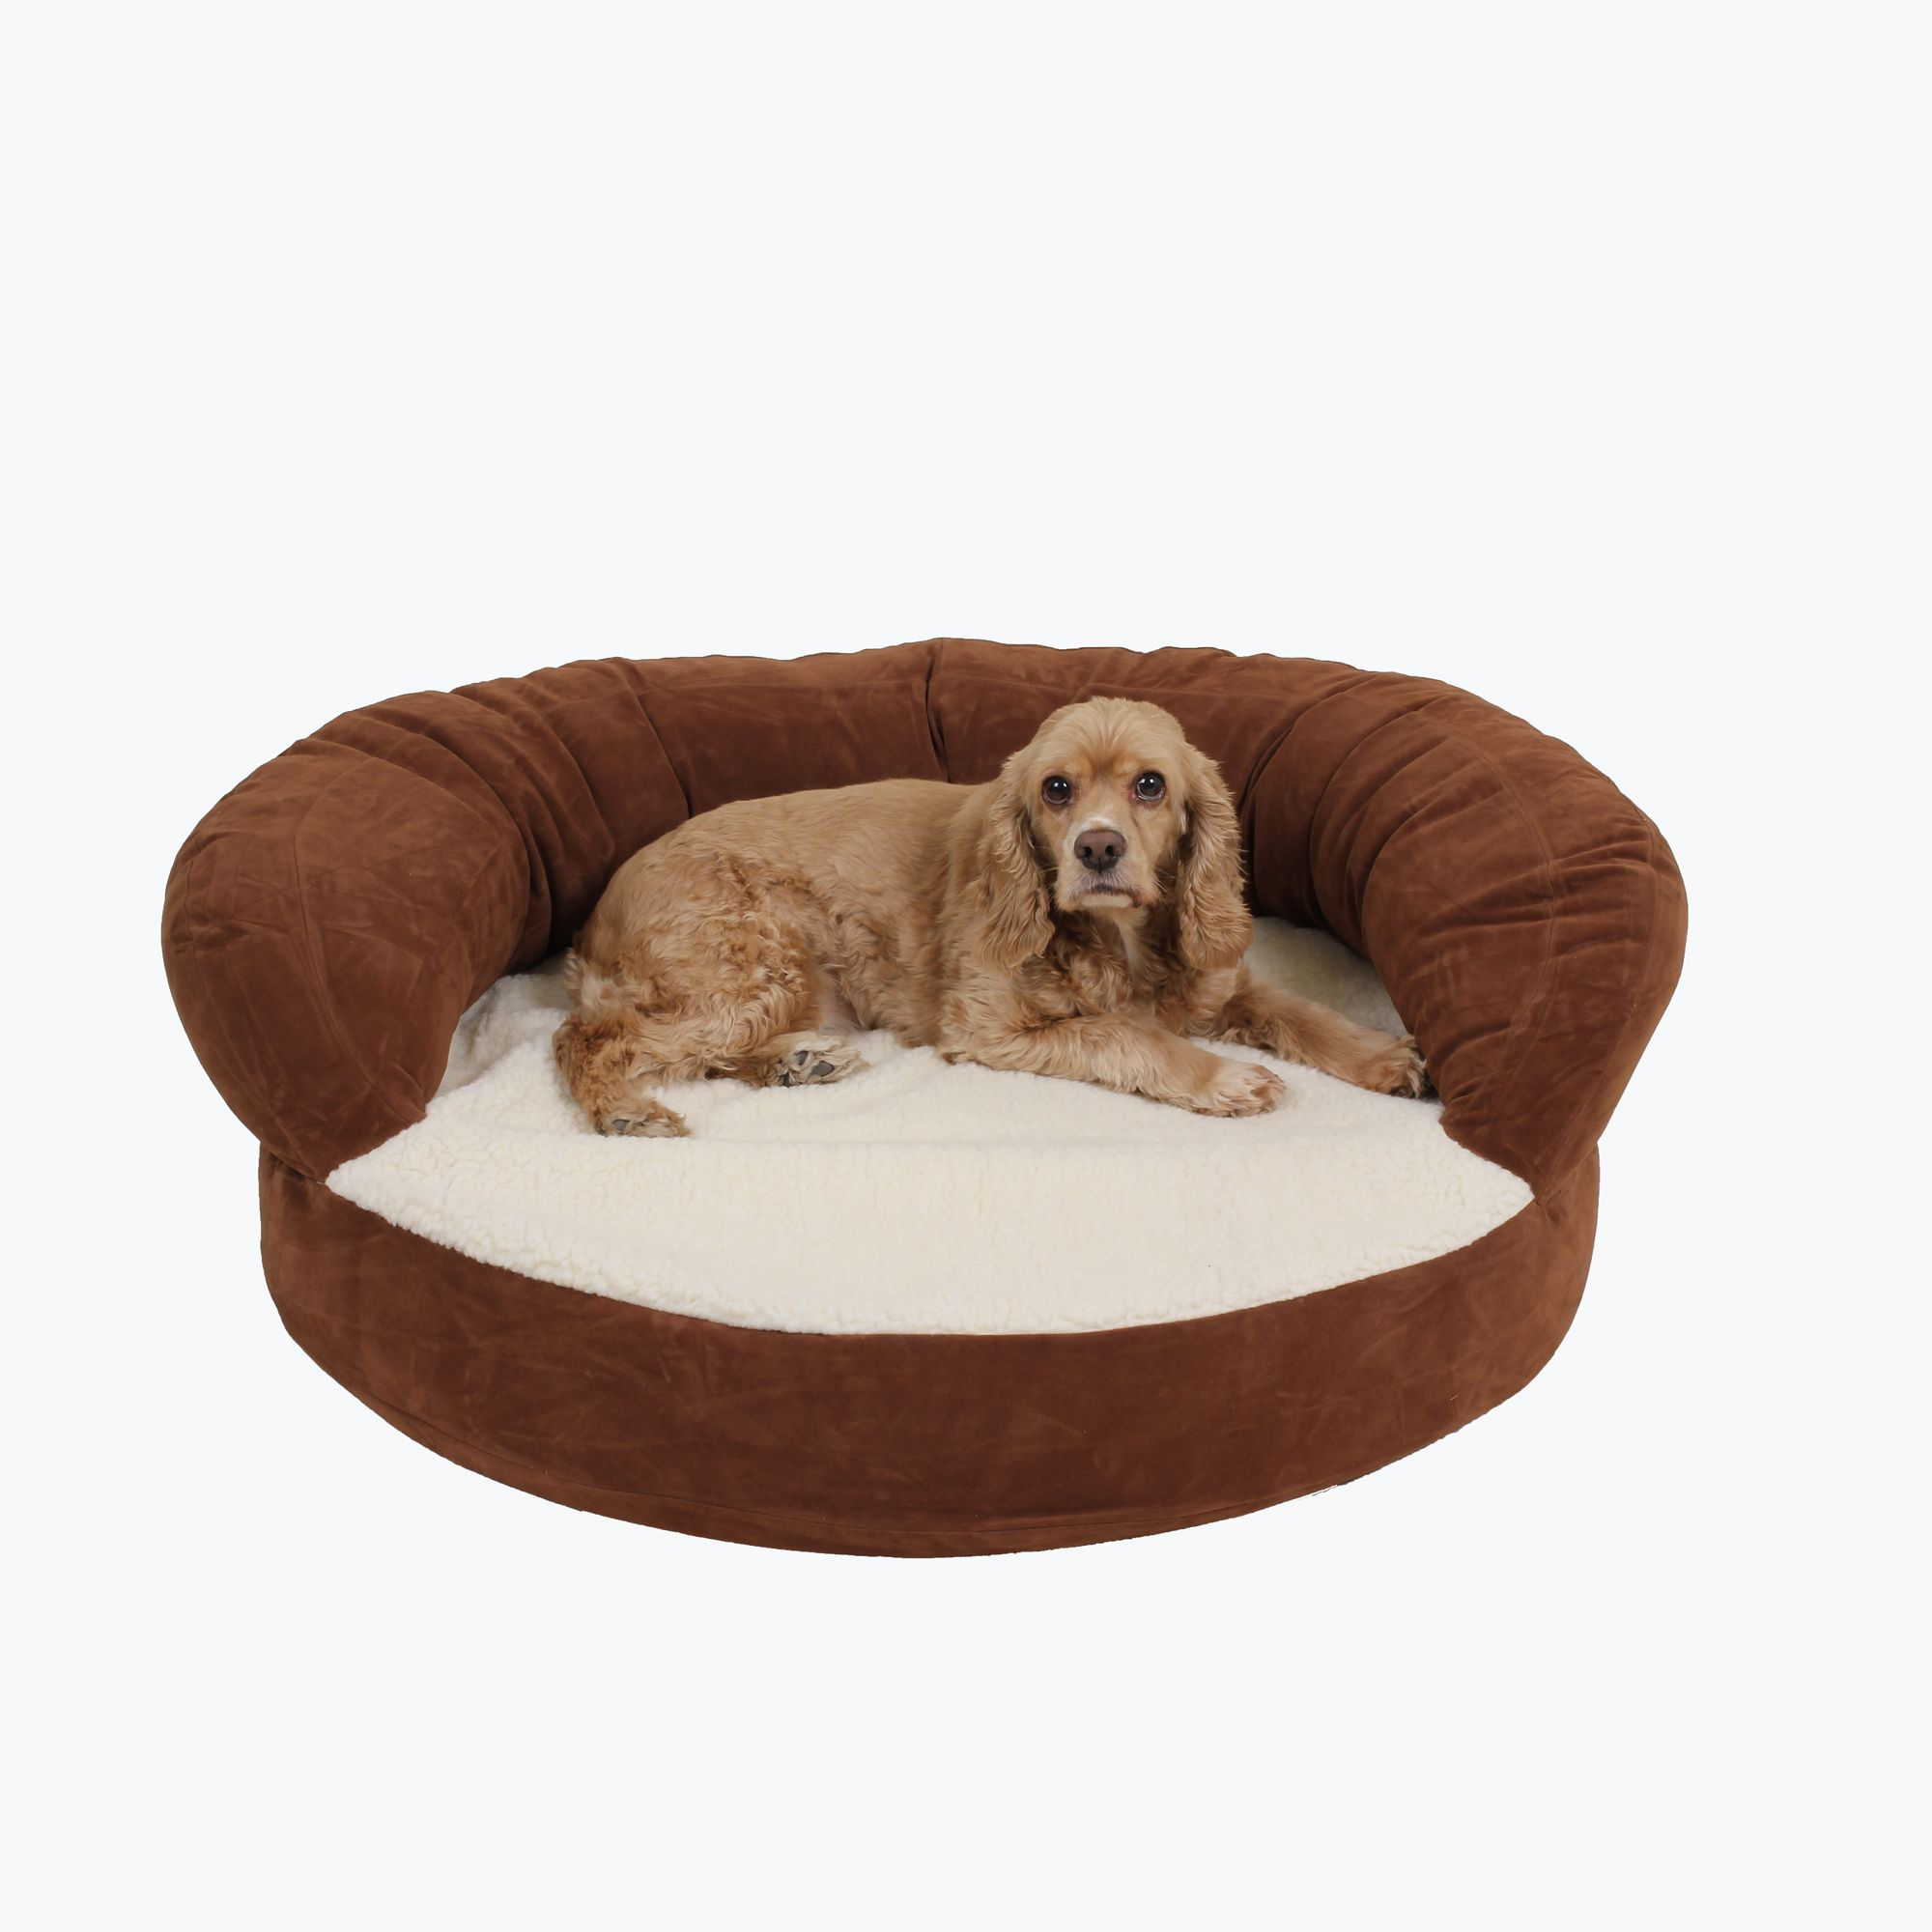 Ortho Sleeper Bolster Bed Pet bed, Pet companies